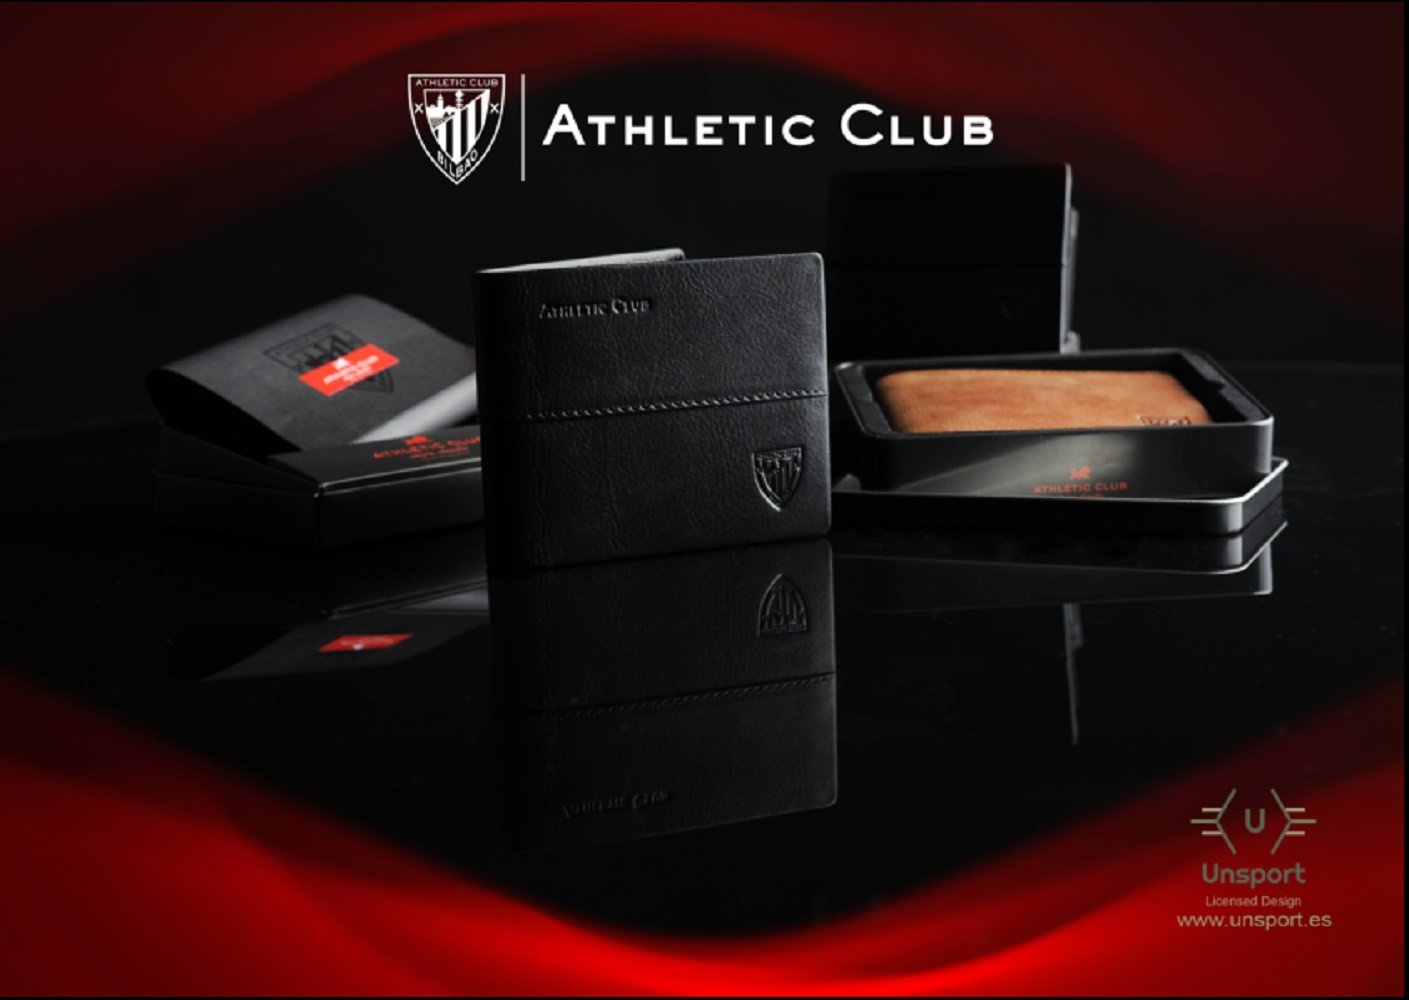 Monedero Tacón Oficial Athletic Club Bilbao de Piel en Color marrón con Billetero y Grabado con Escudo y Letras.: Amazon.es: Equipaje